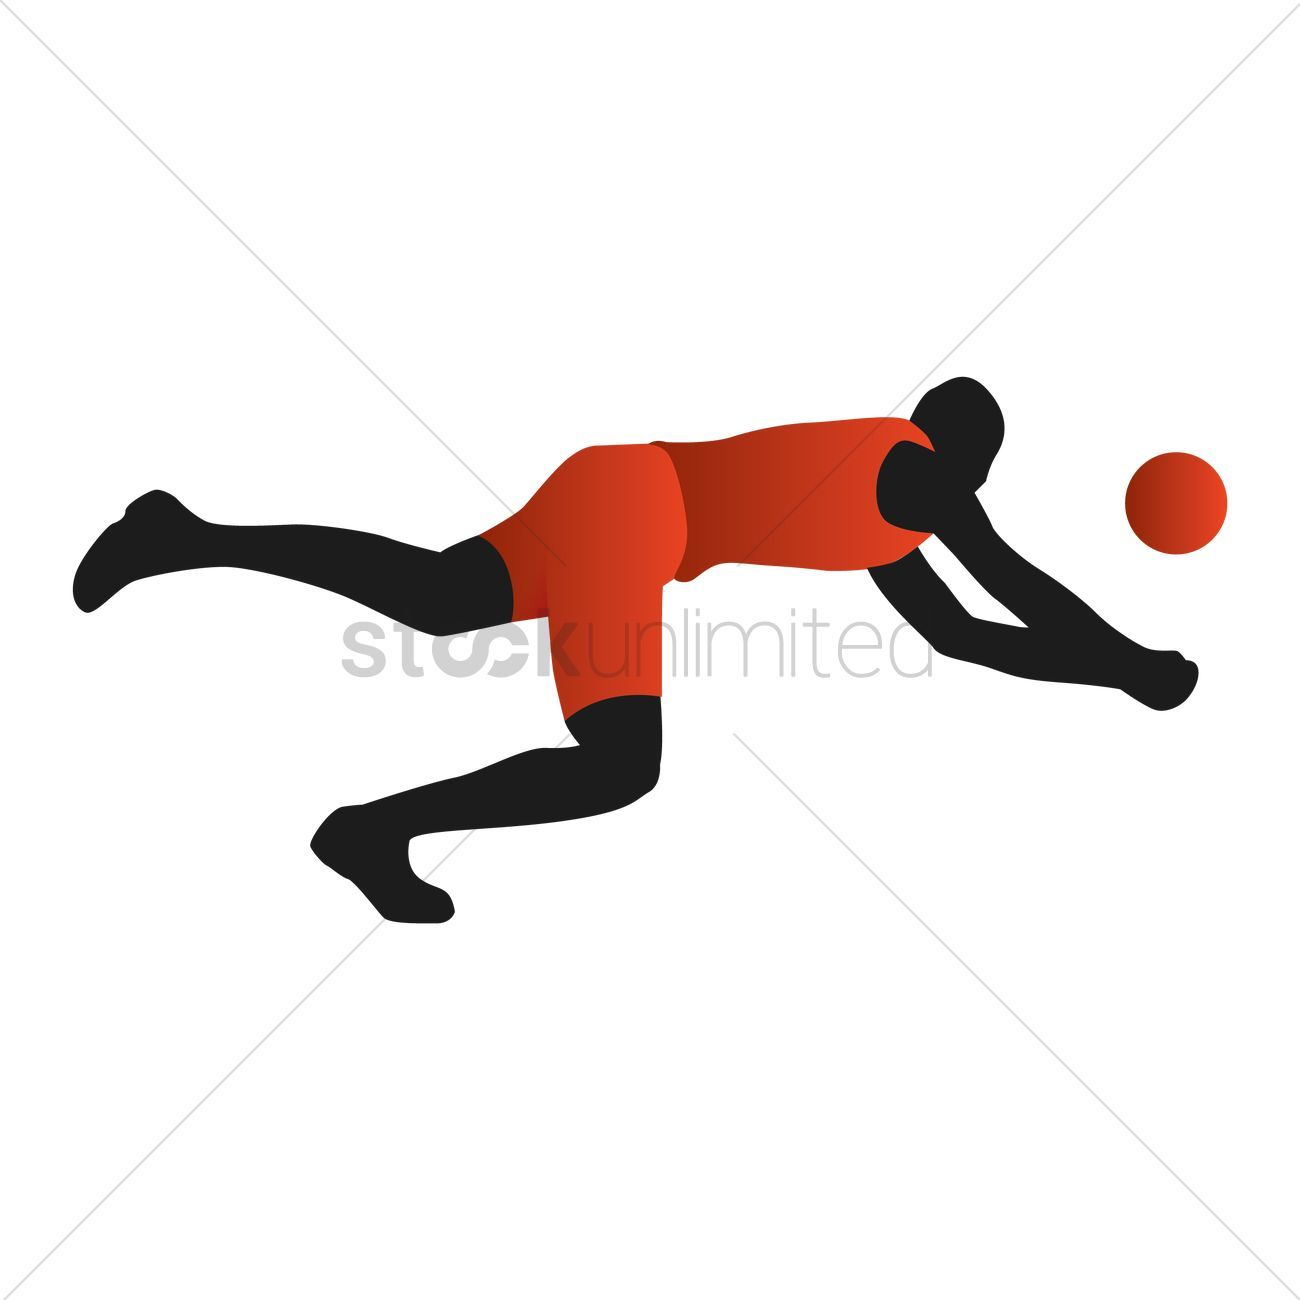 You Don T Have To Be A Designer To Get Awesome Visuals In 2020 Volleyball Players Vector Illustration Players